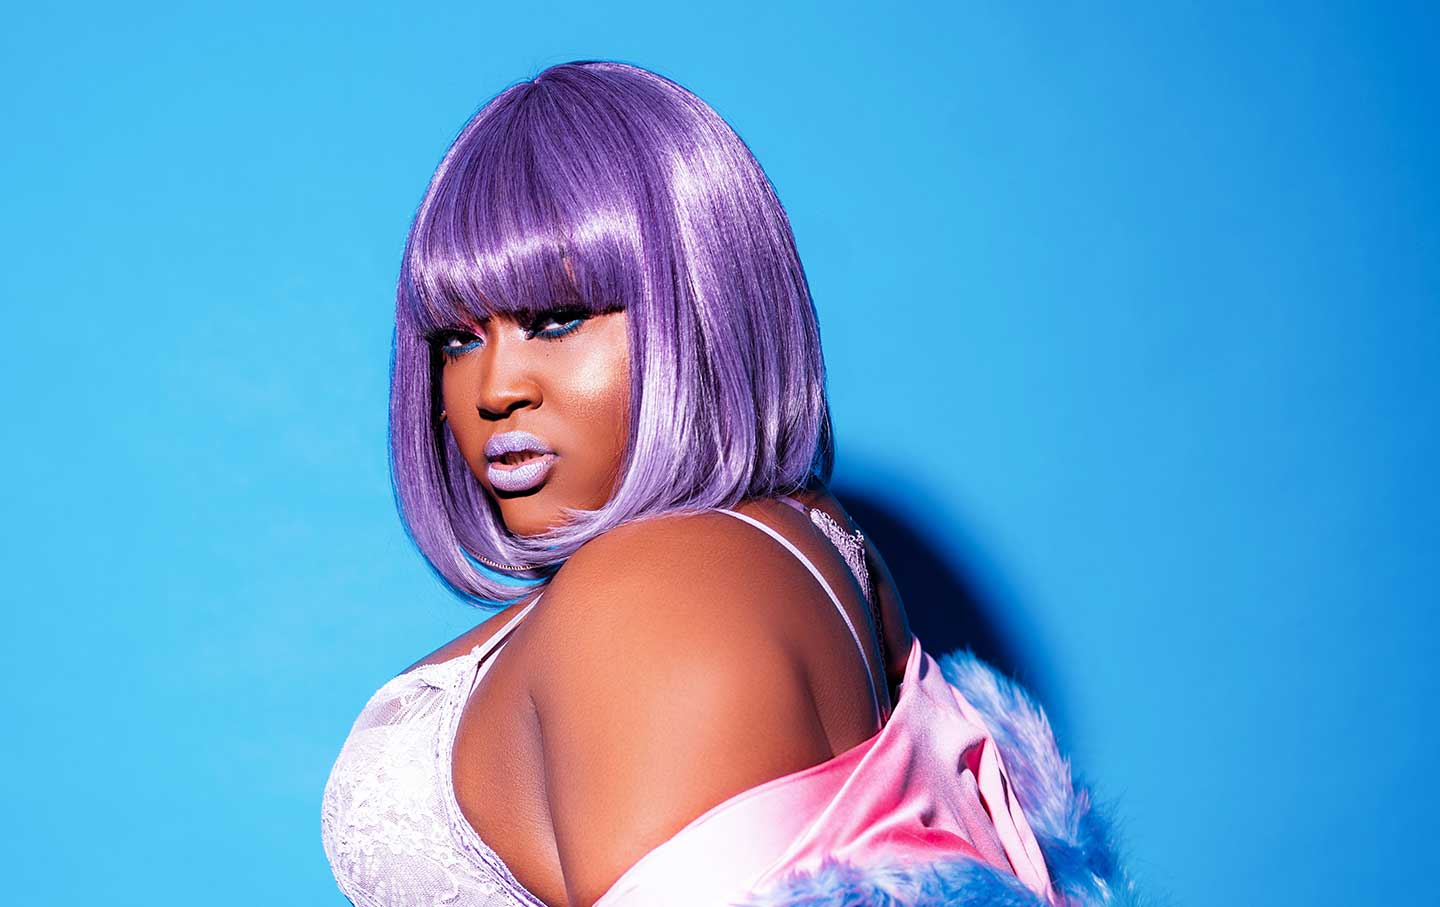 CupcakKe nudes (18 photo), Pussy, Cleavage, Instagram, braless 2020